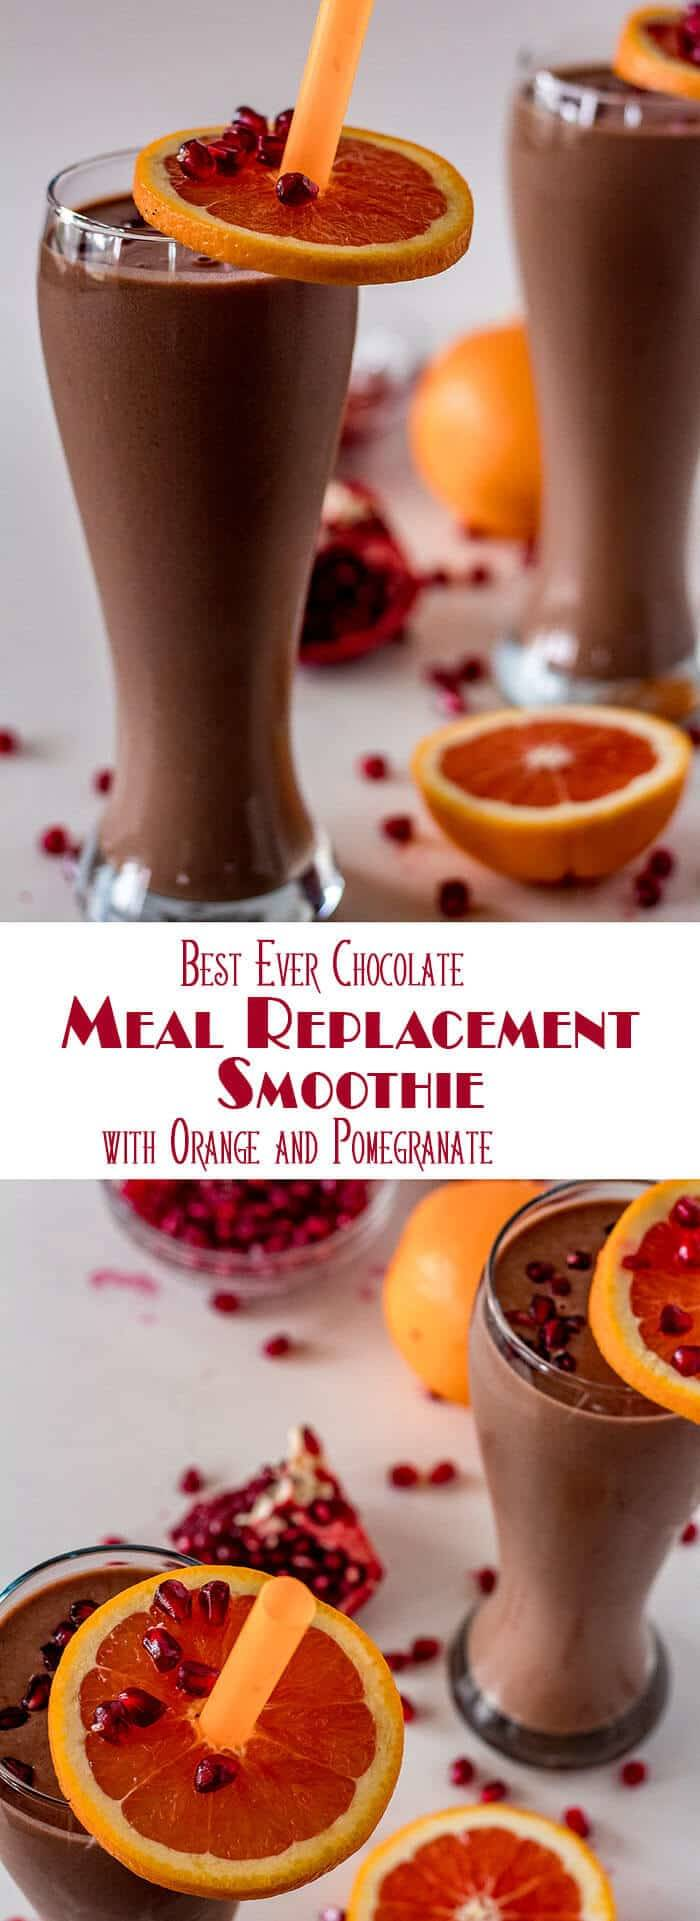 A chocolate, orange, and pomegranate smoothie that tastes more like a milk shake than a workout recovery drink? Yes! This Best Ever Chocolate Meal Replacement Smoothie comes in at 33 grams of protein per serving, and 443 calories with the help of Bob's Red Mill Protein and Fiber Nutritional Booster... A tasty (and healthy) start to the New Year! #BobsRedMill #mealreplacementsmoothie #chocolatesmoothie #chocolateproteinshake